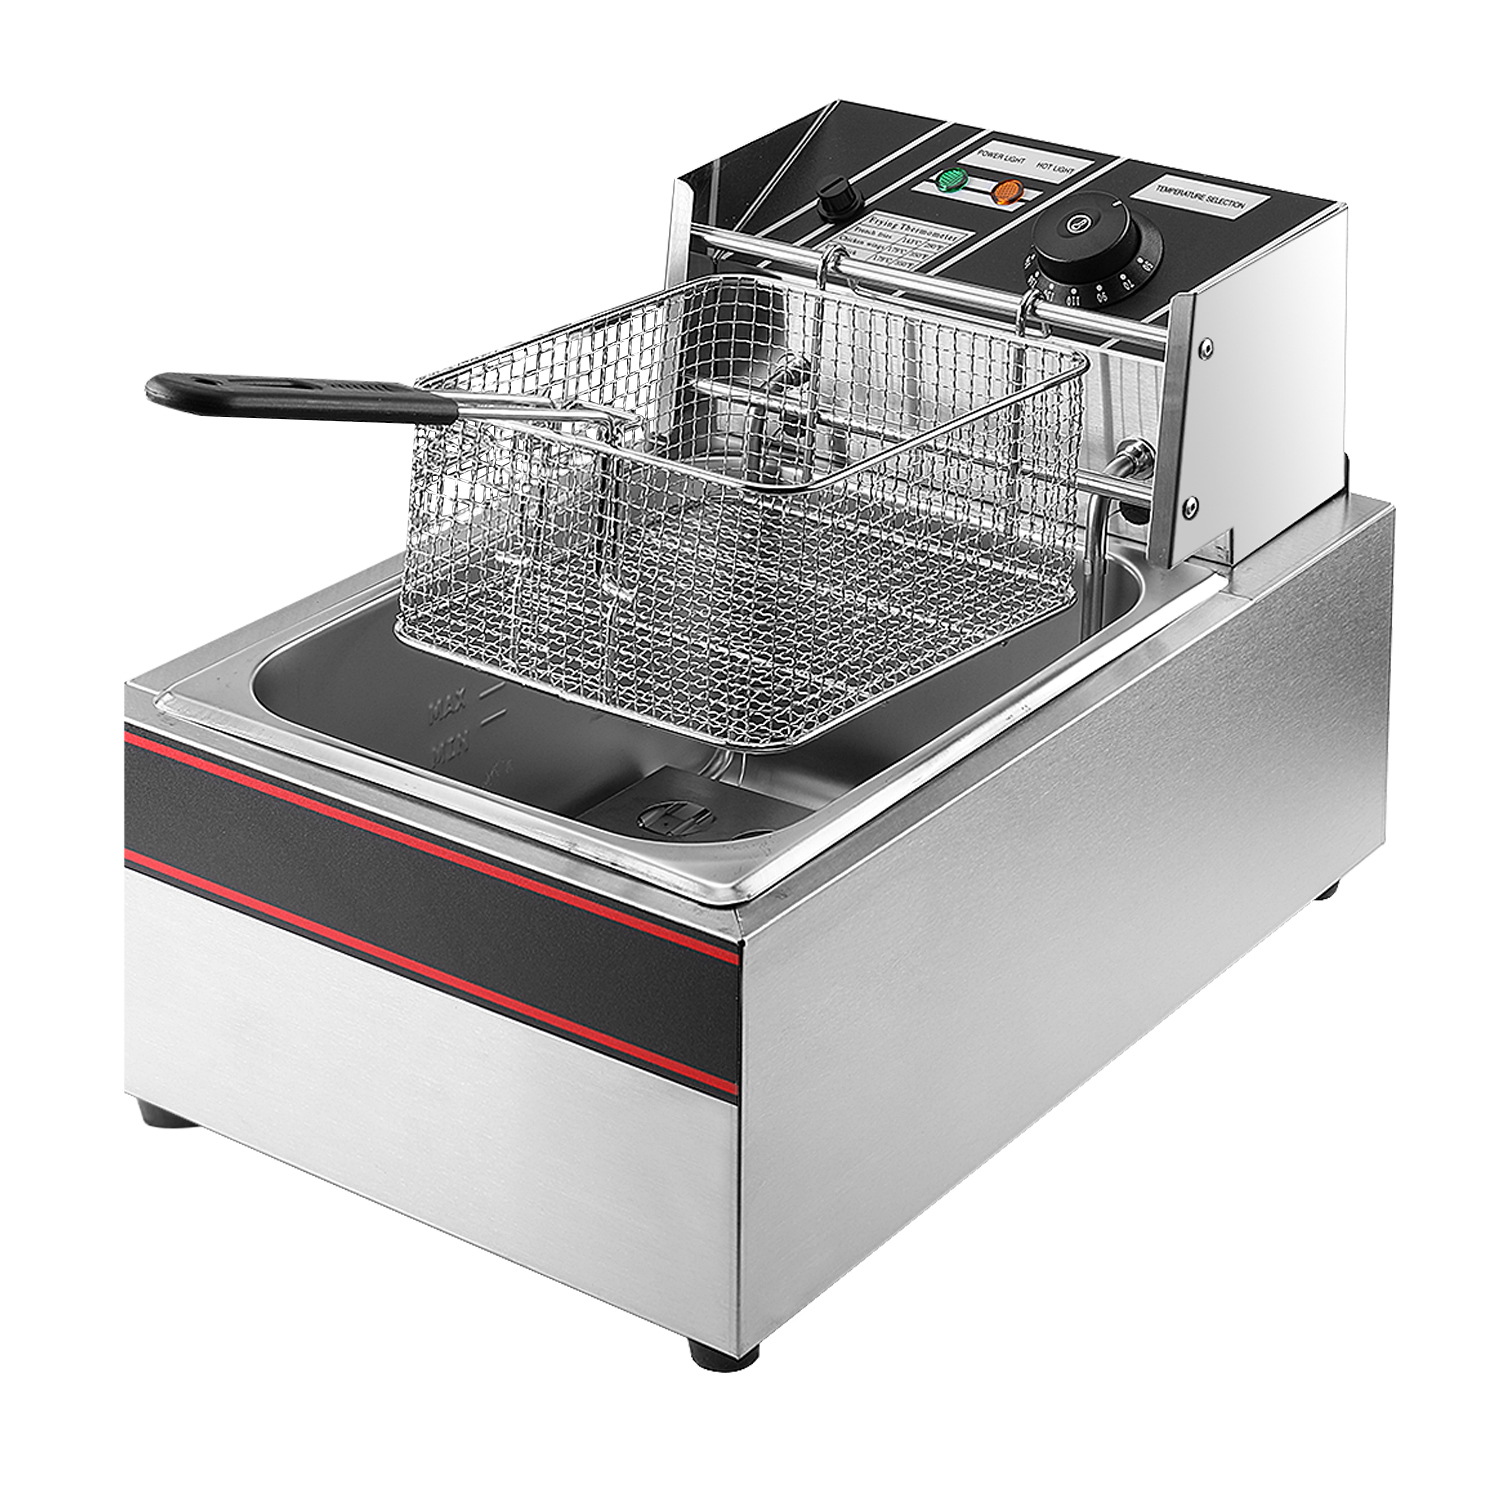 electric countertop deep fryer tank basket commercial restaurant heavy stainless steel for at home or commercial